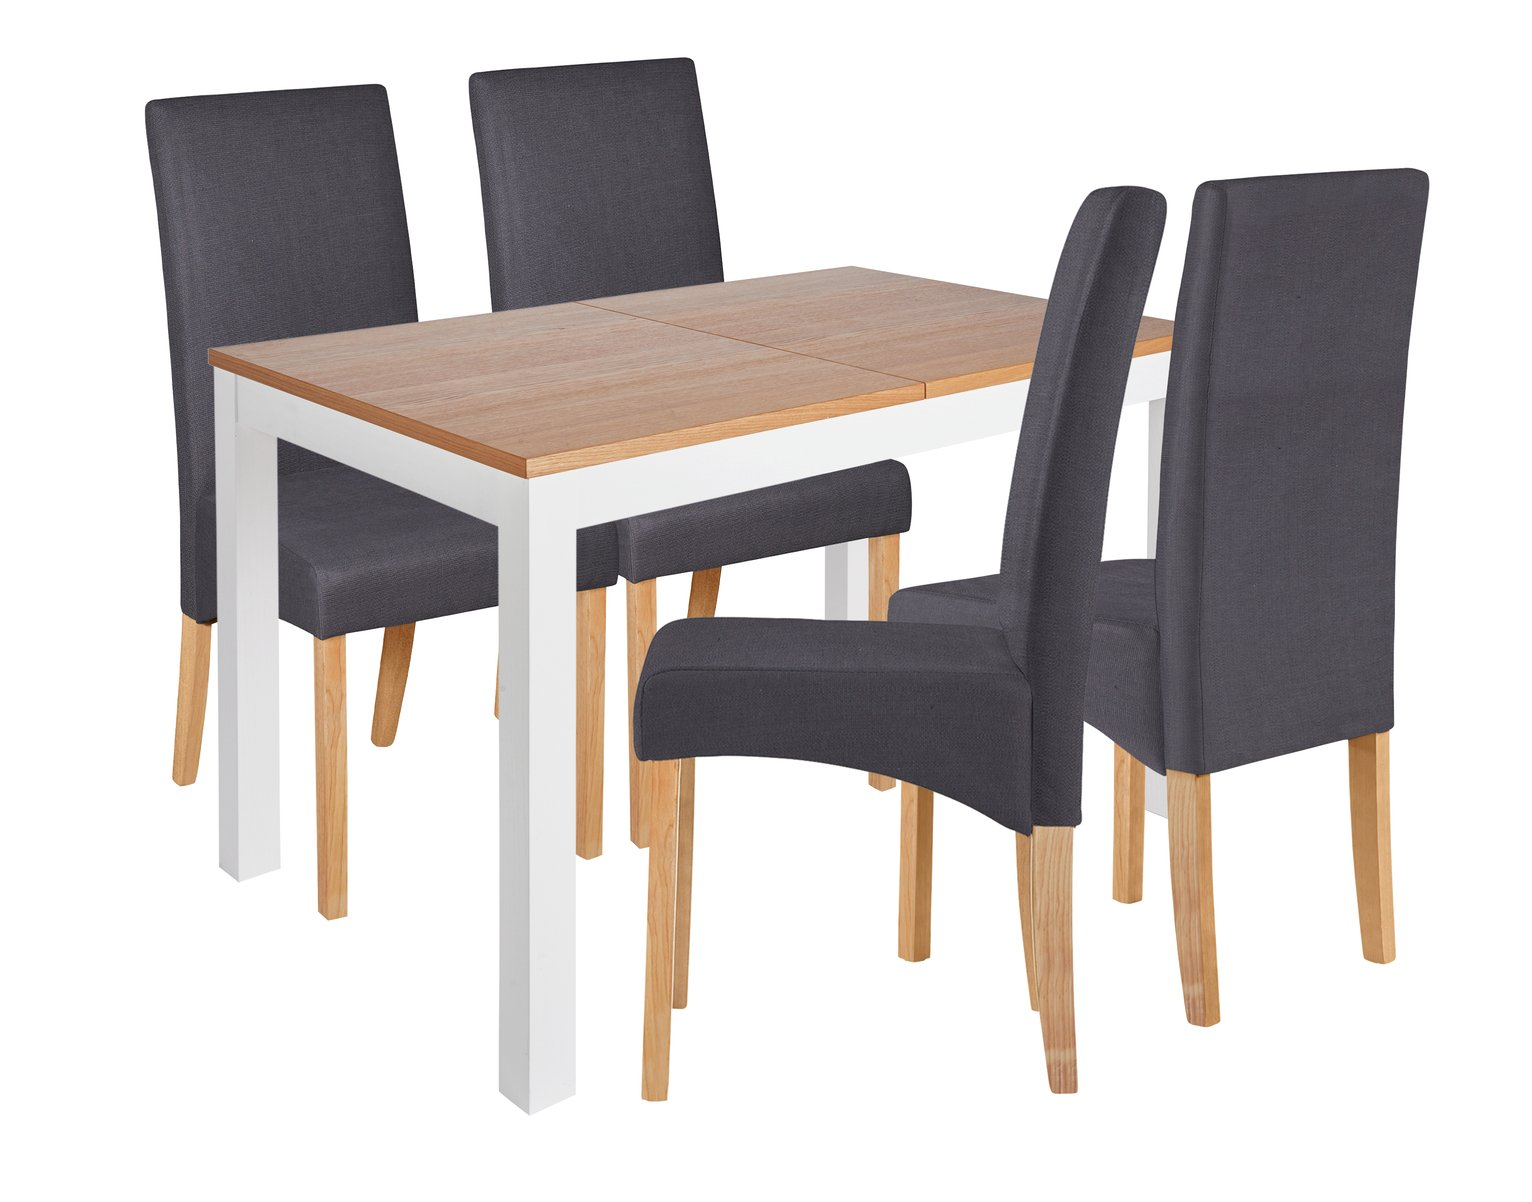 Image of Collection Clifton Extendable Table & 4 Chairs Charcoal - White Legs